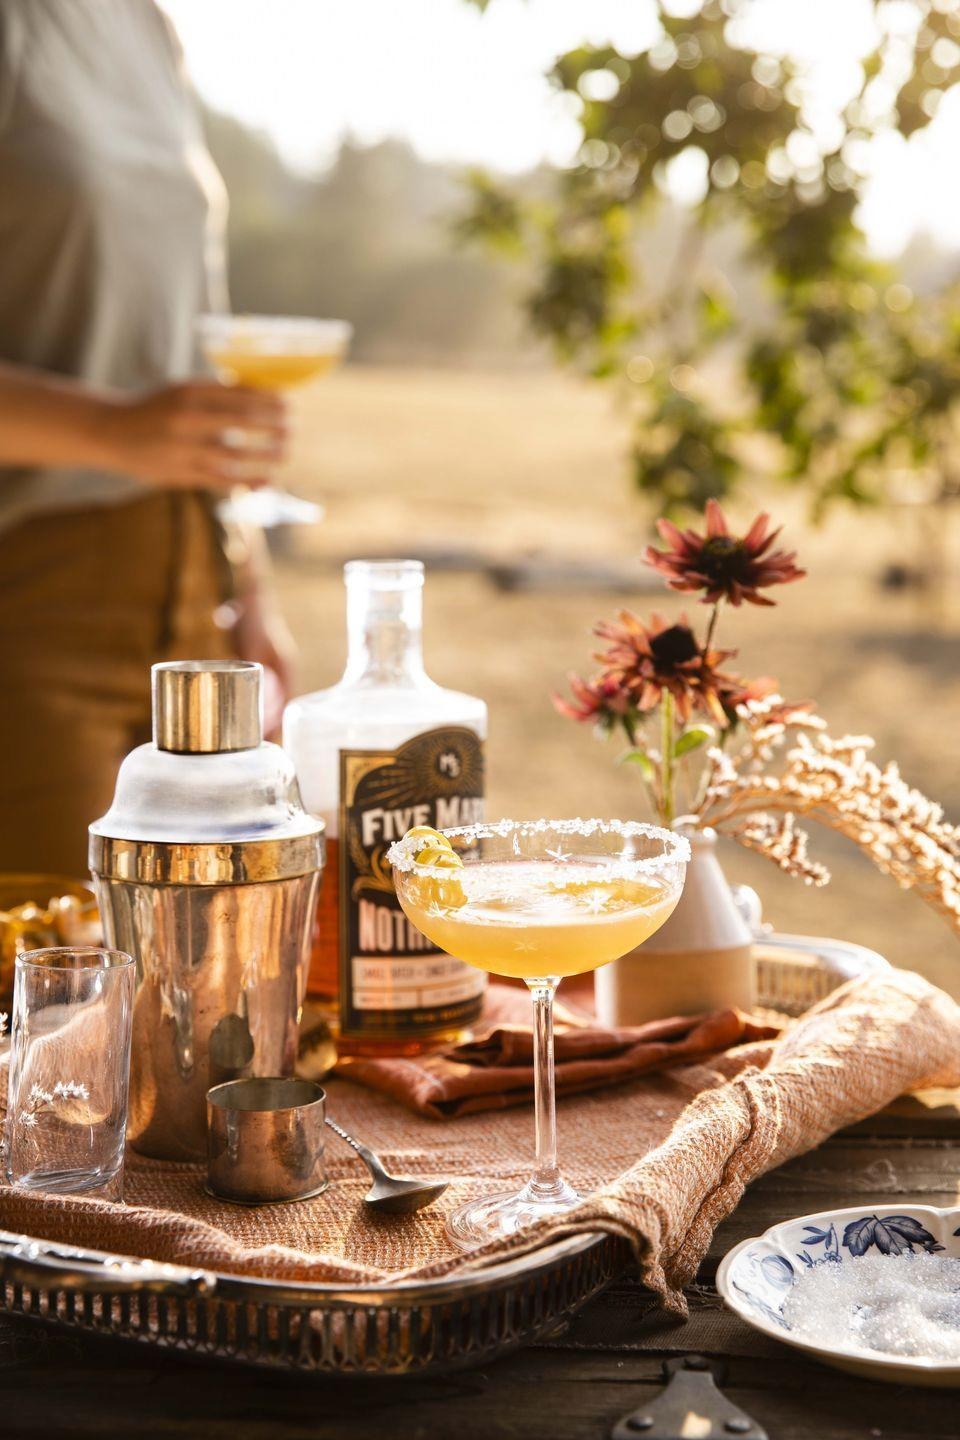 """<p>This bourbon-based take on the elegant turn-of-the-century cocktail comes from Mary Heffernen of <a href=""""https://www.fivemarysfarms.com/"""" rel=""""nofollow noopener"""" target=""""_blank"""" data-ylk=""""slk:Five Marys Farms"""" class=""""link rapid-noclick-resp"""">Five Marys Farms</a>. It's dangerously quaffable.</p><p><strong><a href=""""https://www.countryliving.com/food-drinks/a34277083/m5-sidecar/"""" rel=""""nofollow noopener"""" target=""""_blank"""" data-ylk=""""slk:Get the recipe"""" class=""""link rapid-noclick-resp"""">Get the recipe</a>.</strong></p><p><strong><a class=""""link rapid-noclick-resp"""" href=""""https://www.amazon.com/dp/B07YBJ483D?tag=syn-yahoo-20&ascsubtag=%5Bartid%7C10050.g.1078%5Bsrc%7Cyahoo-us"""" rel=""""nofollow noopener"""" target=""""_blank"""" data-ylk=""""slk:SHOP BAR TOOLS"""">SHOP BAR TOOLS</a><br></strong></p>"""